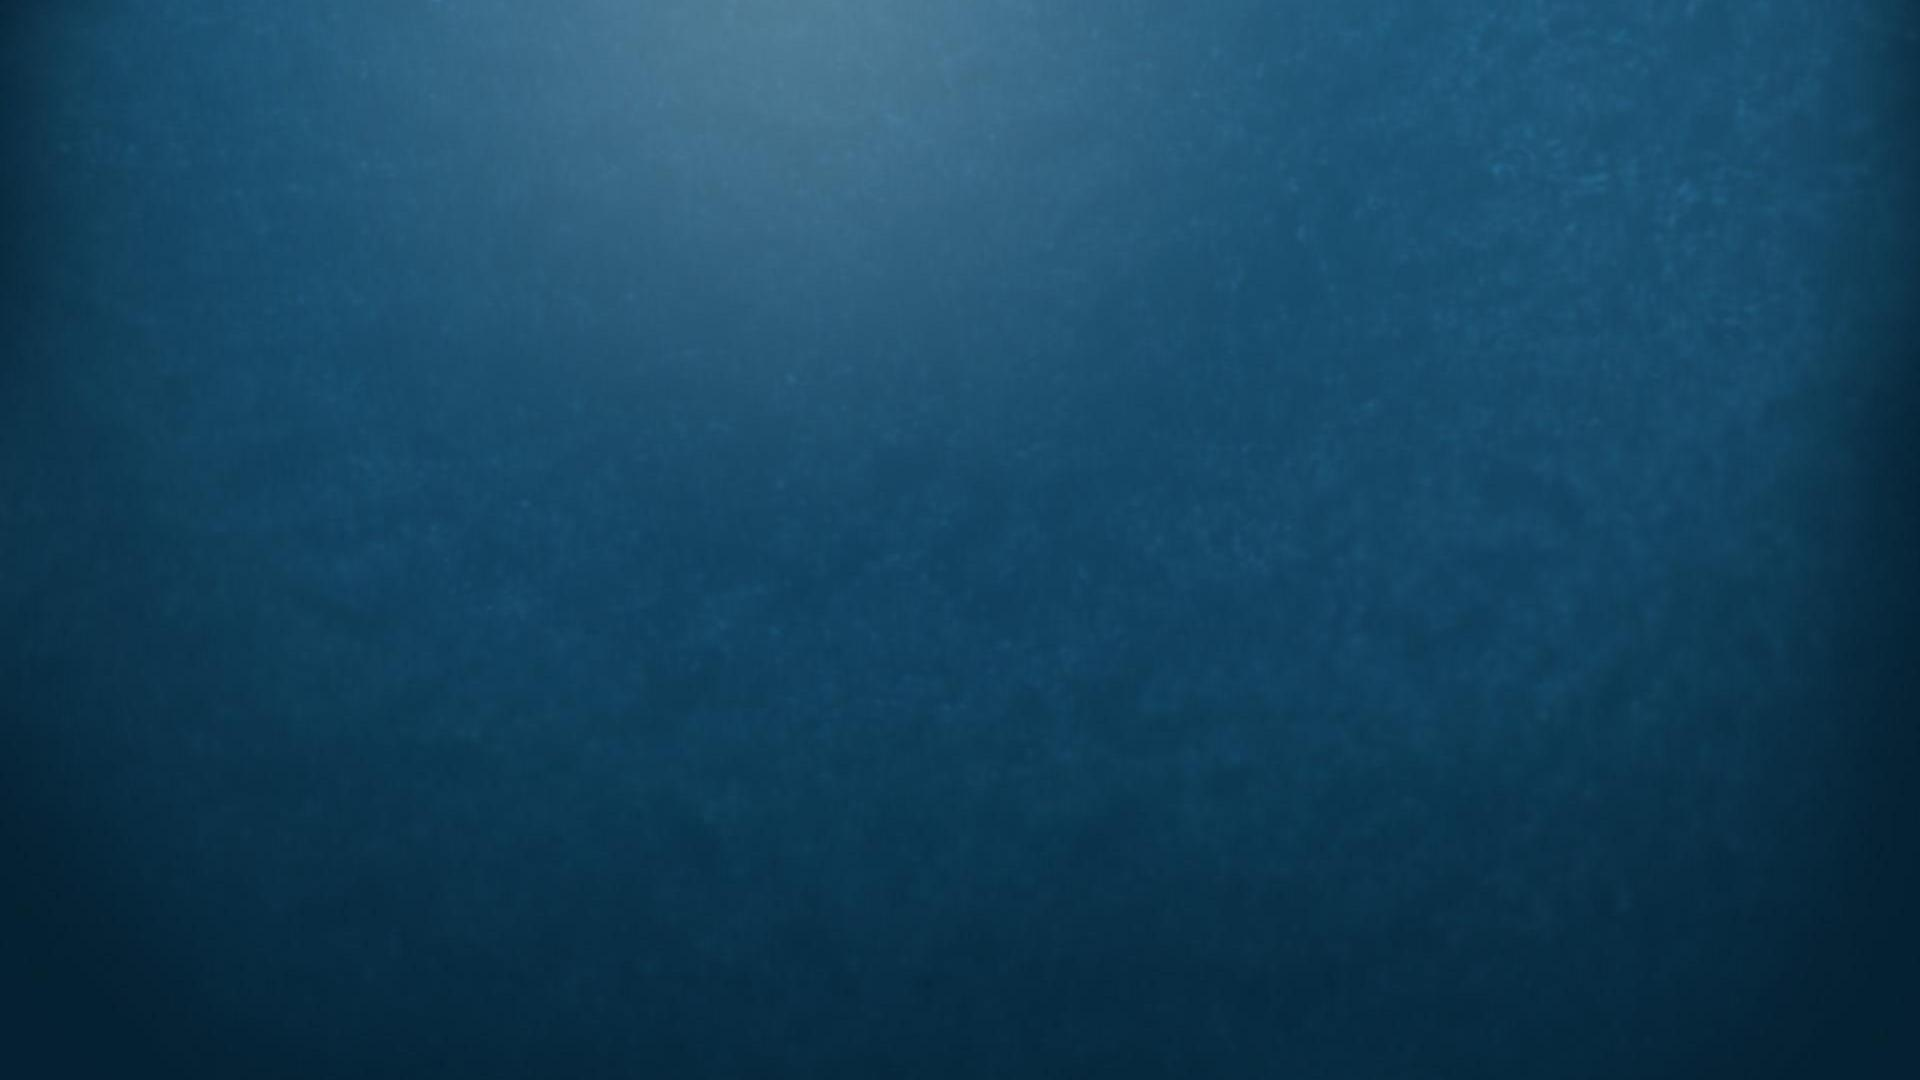 bluewallpapersnetwallpapers1920x1080abstract blue gradientjpg 1920x1080